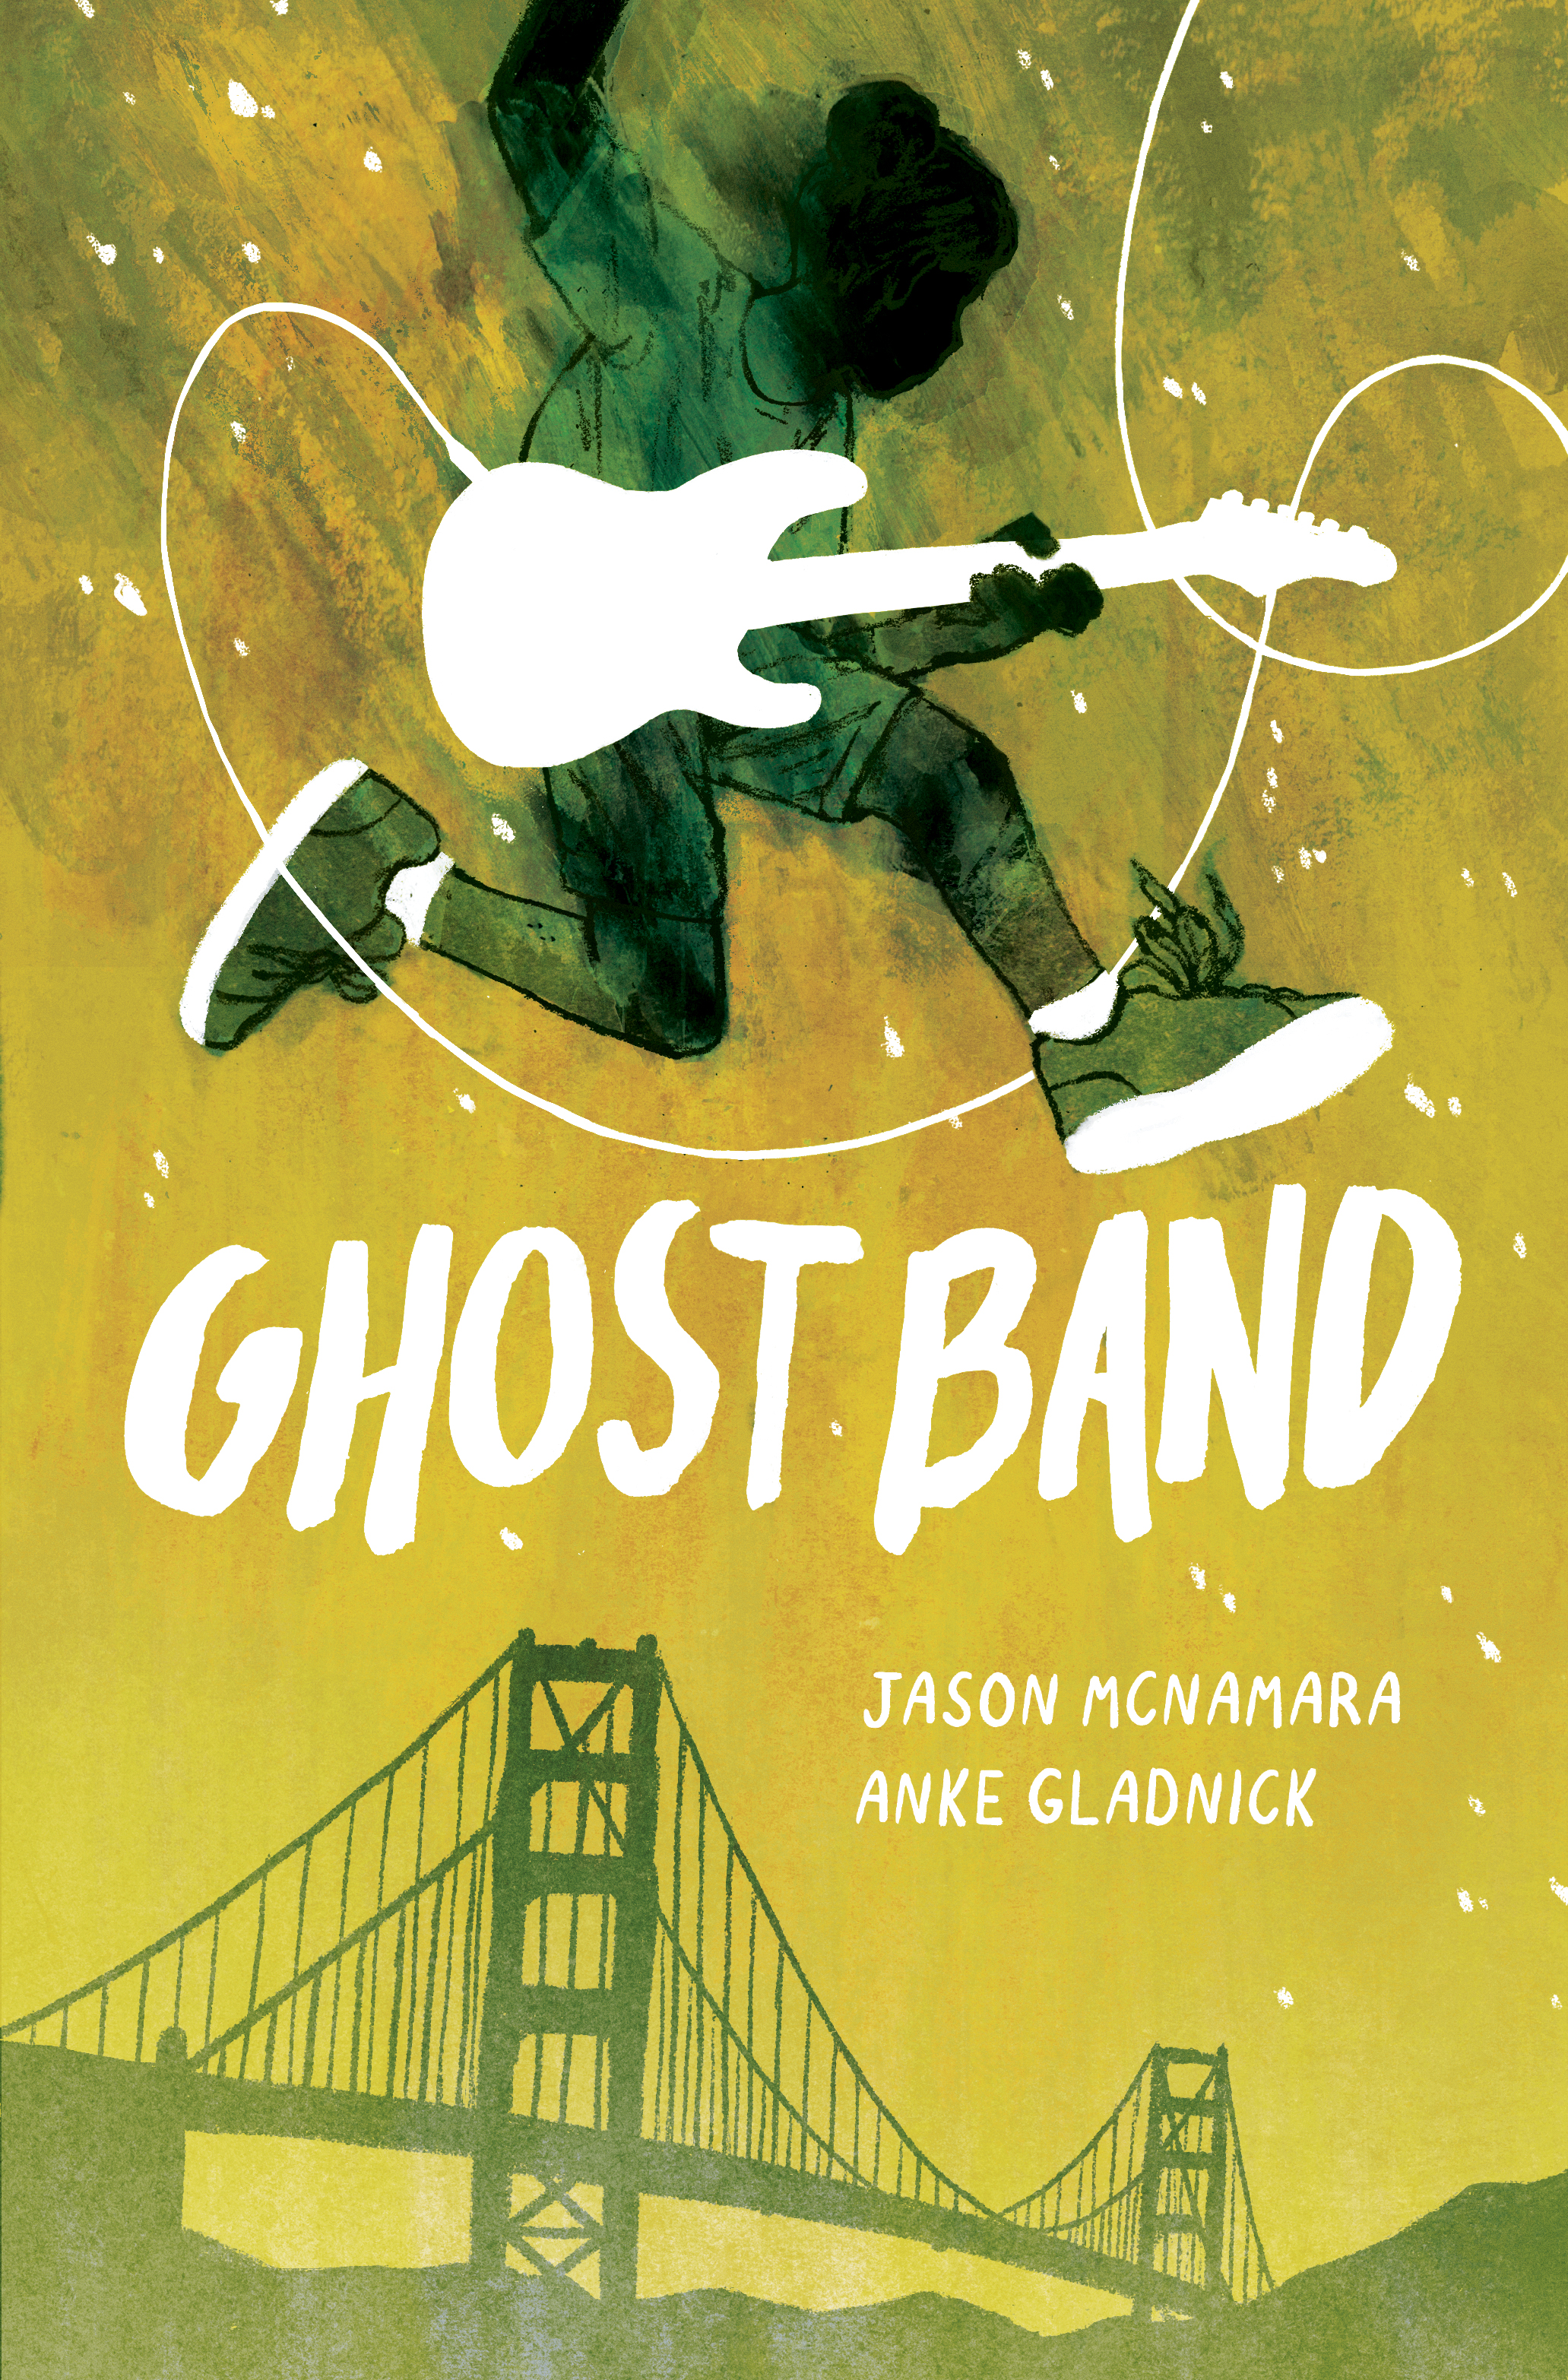 ghostband_cover.jpg